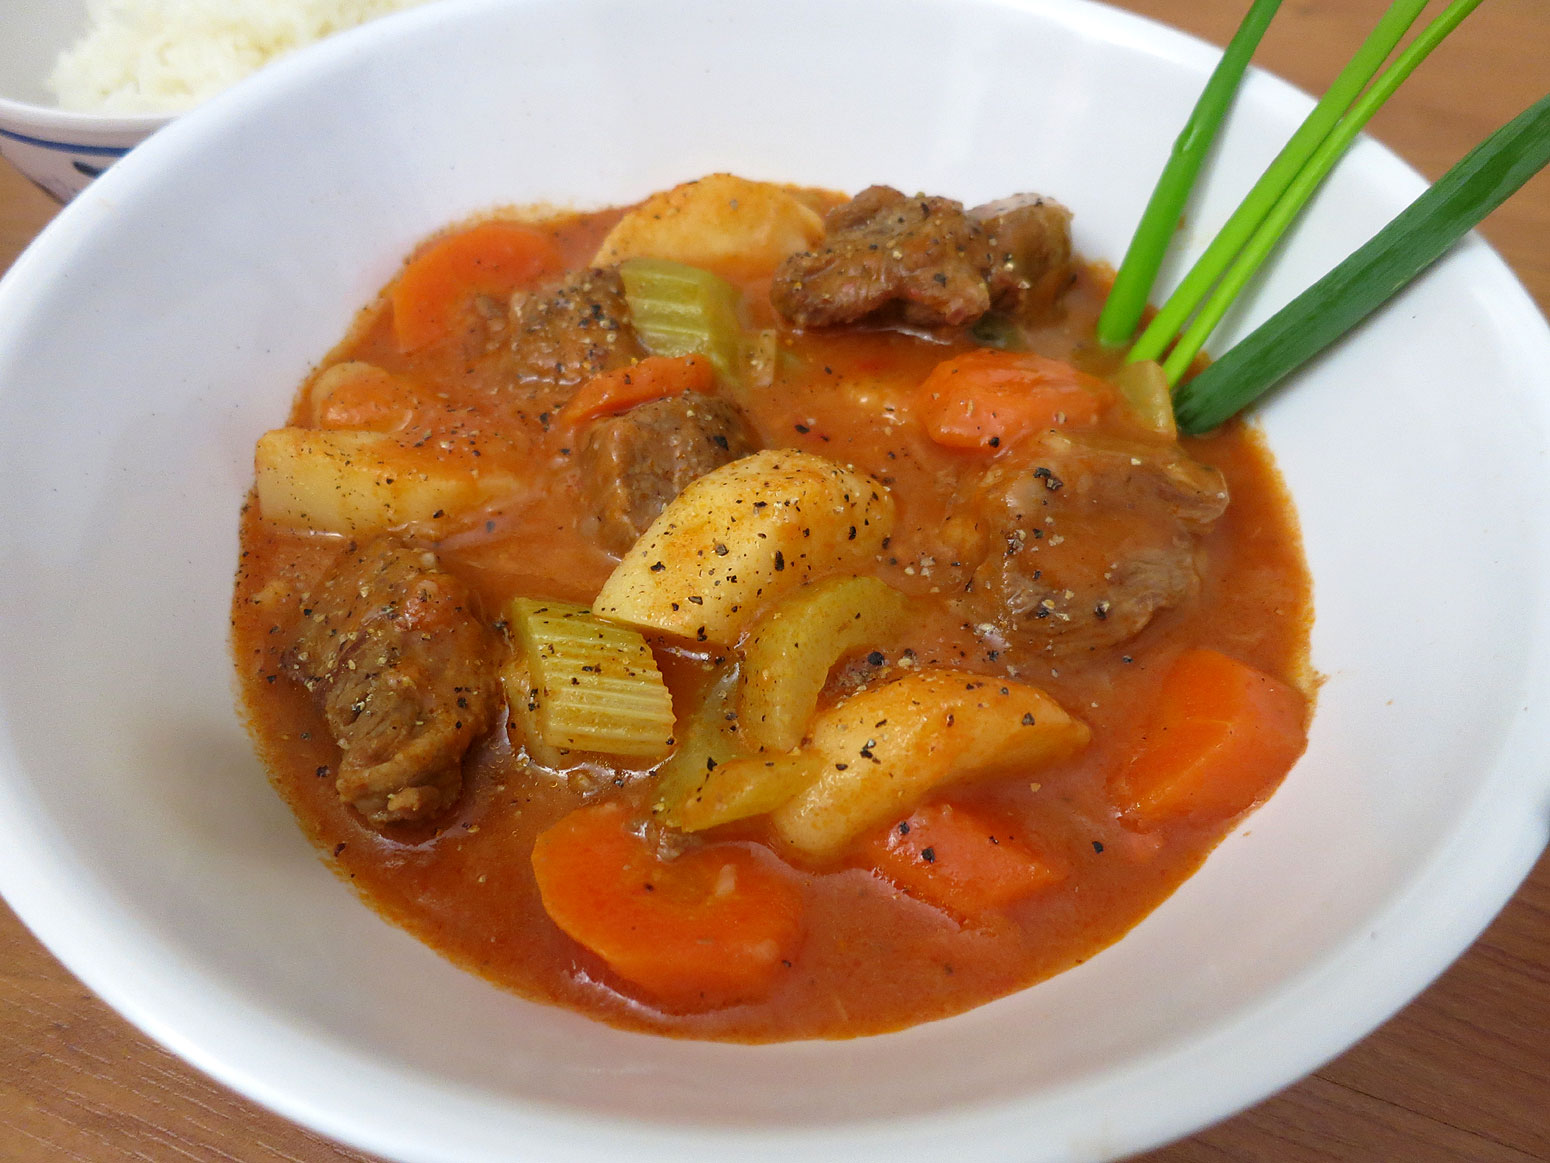 Chef Keonis Hearty Beef Stew